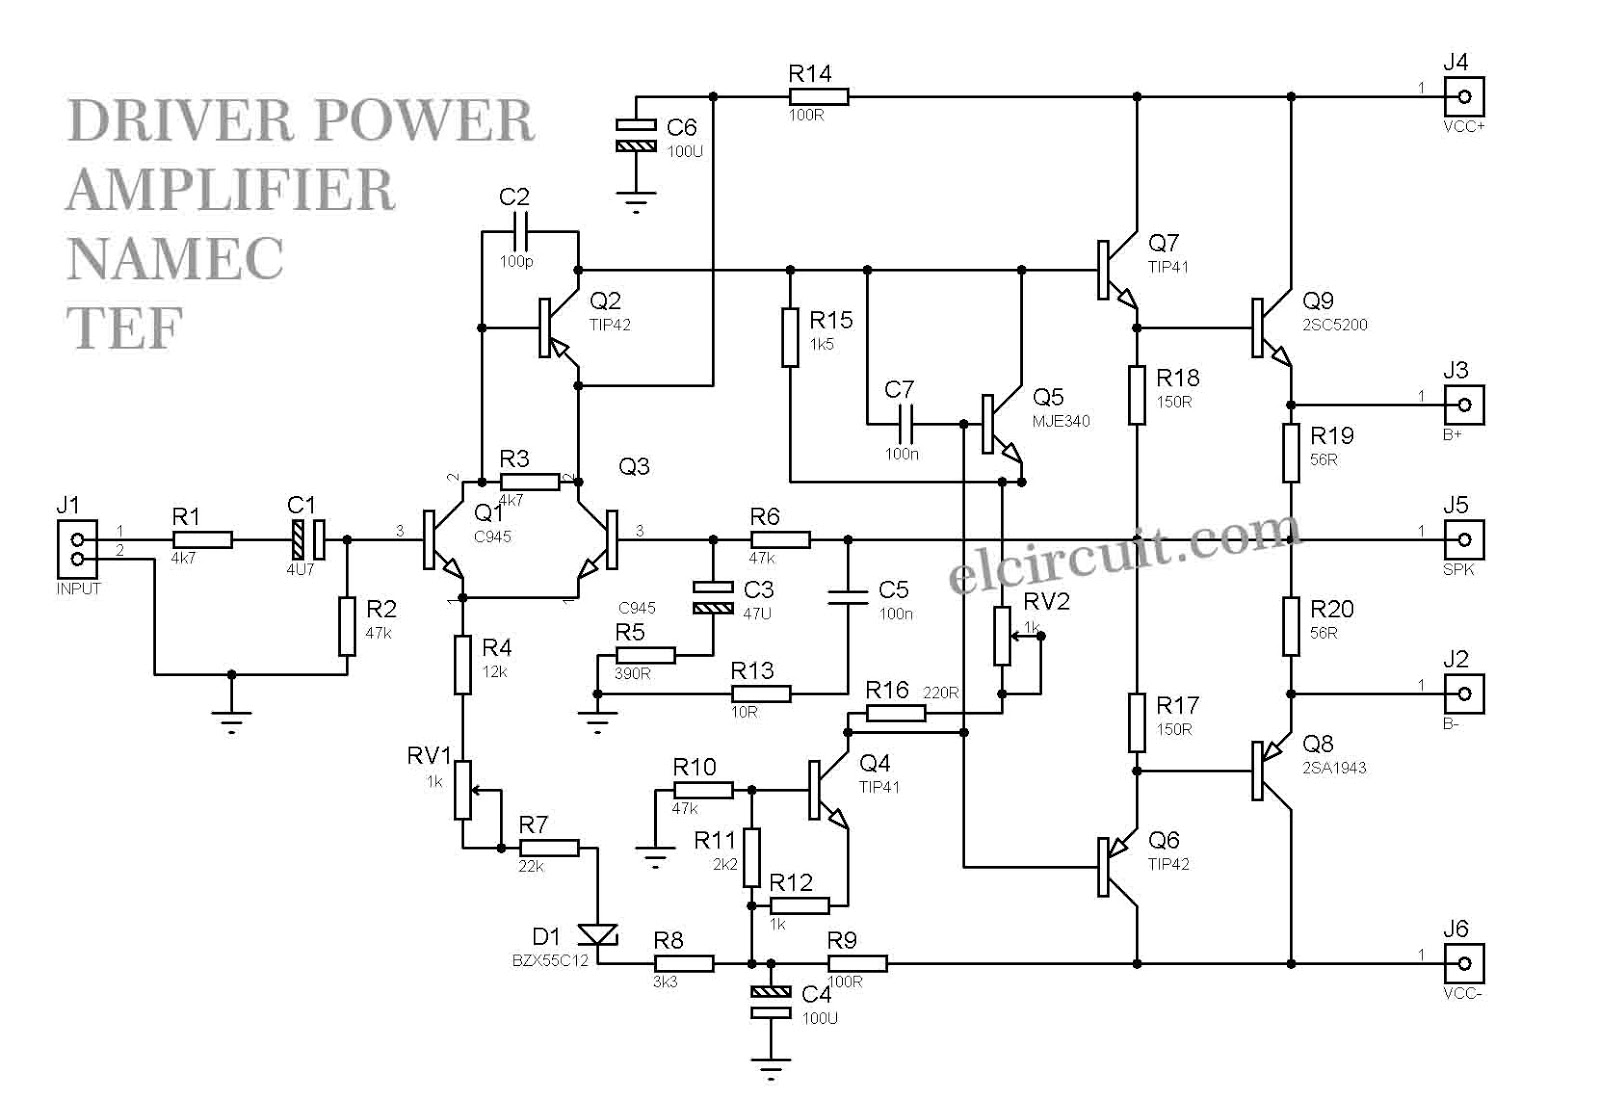 1000w Driver Power Amplifier Namec Tef Electronic Circuit Trim Pot Wiring Diagram Schematic